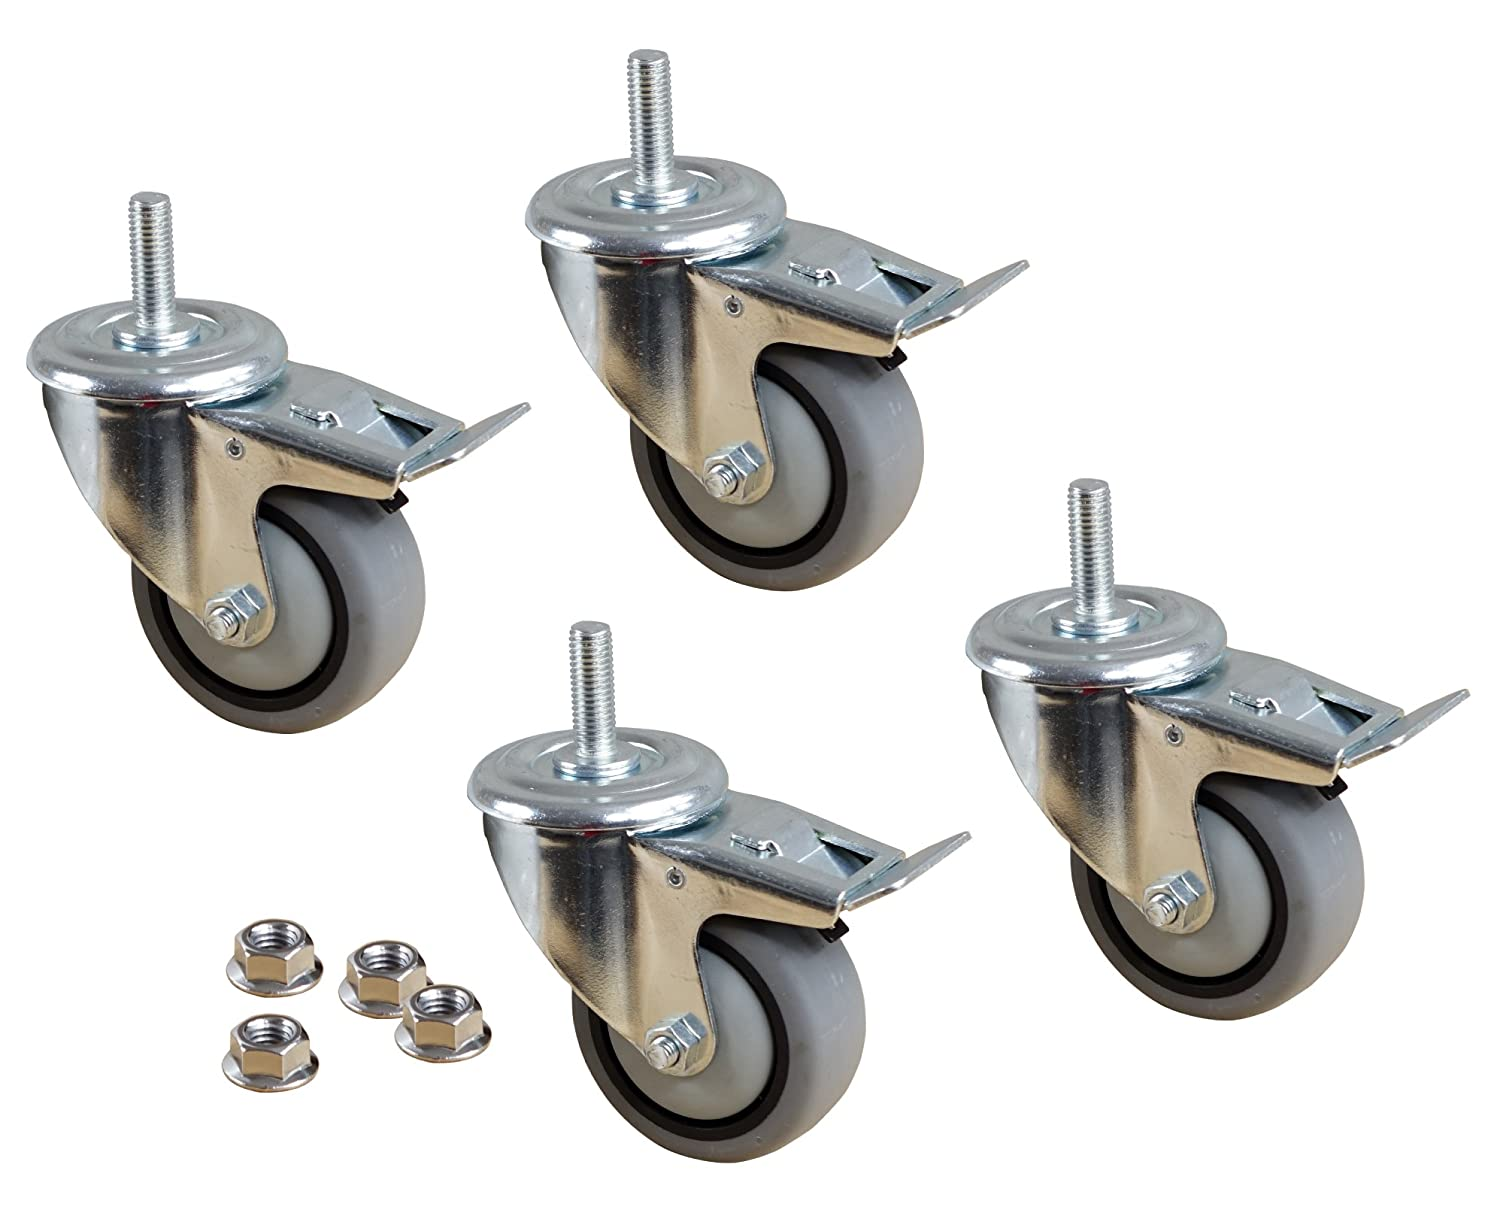 POWERTEC 17201 3 TPR Swivel Dual Lock Caster Kit 4 Pack